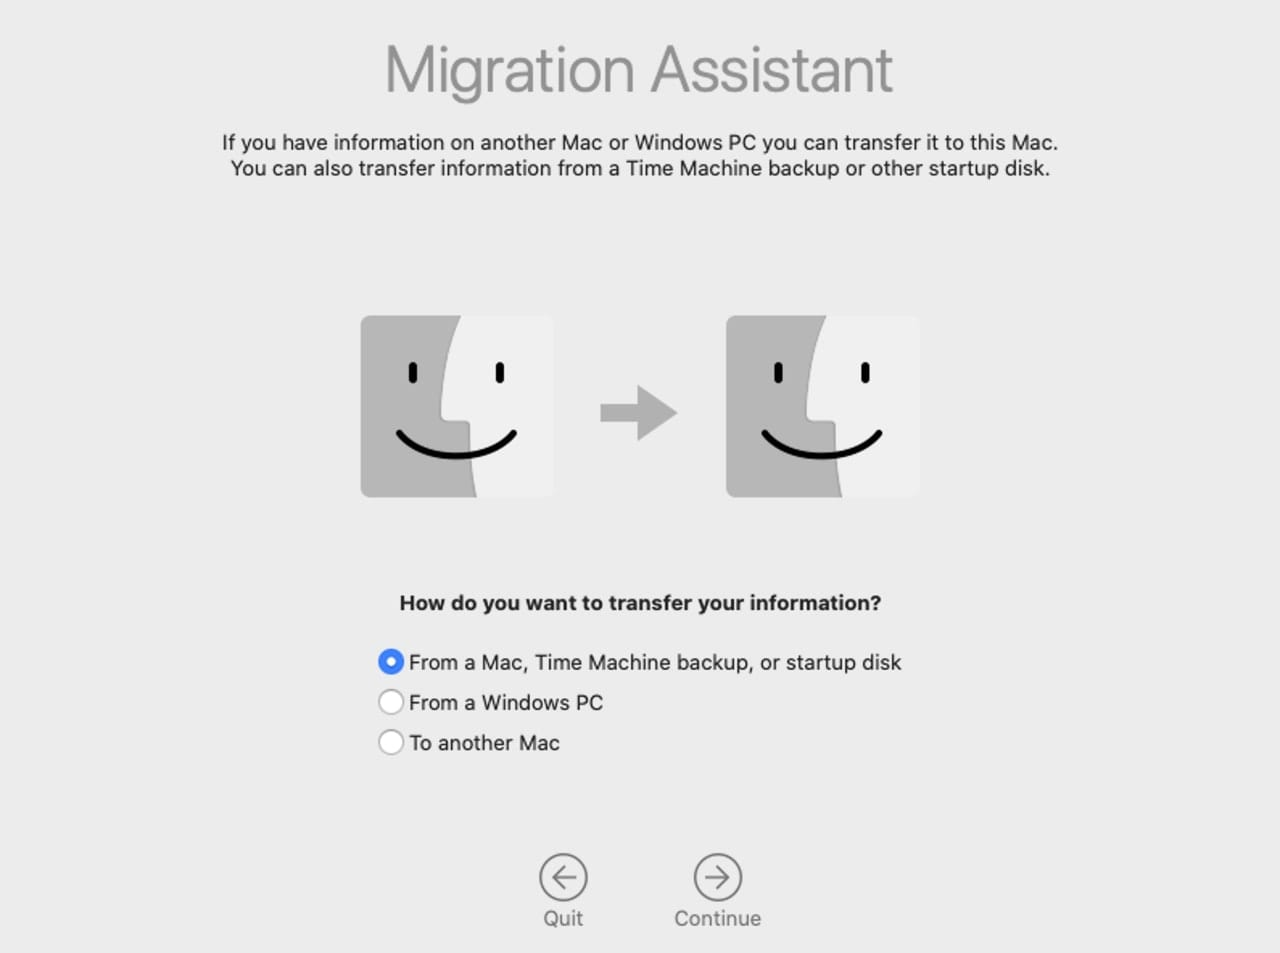 Migration Assistant transfer type.